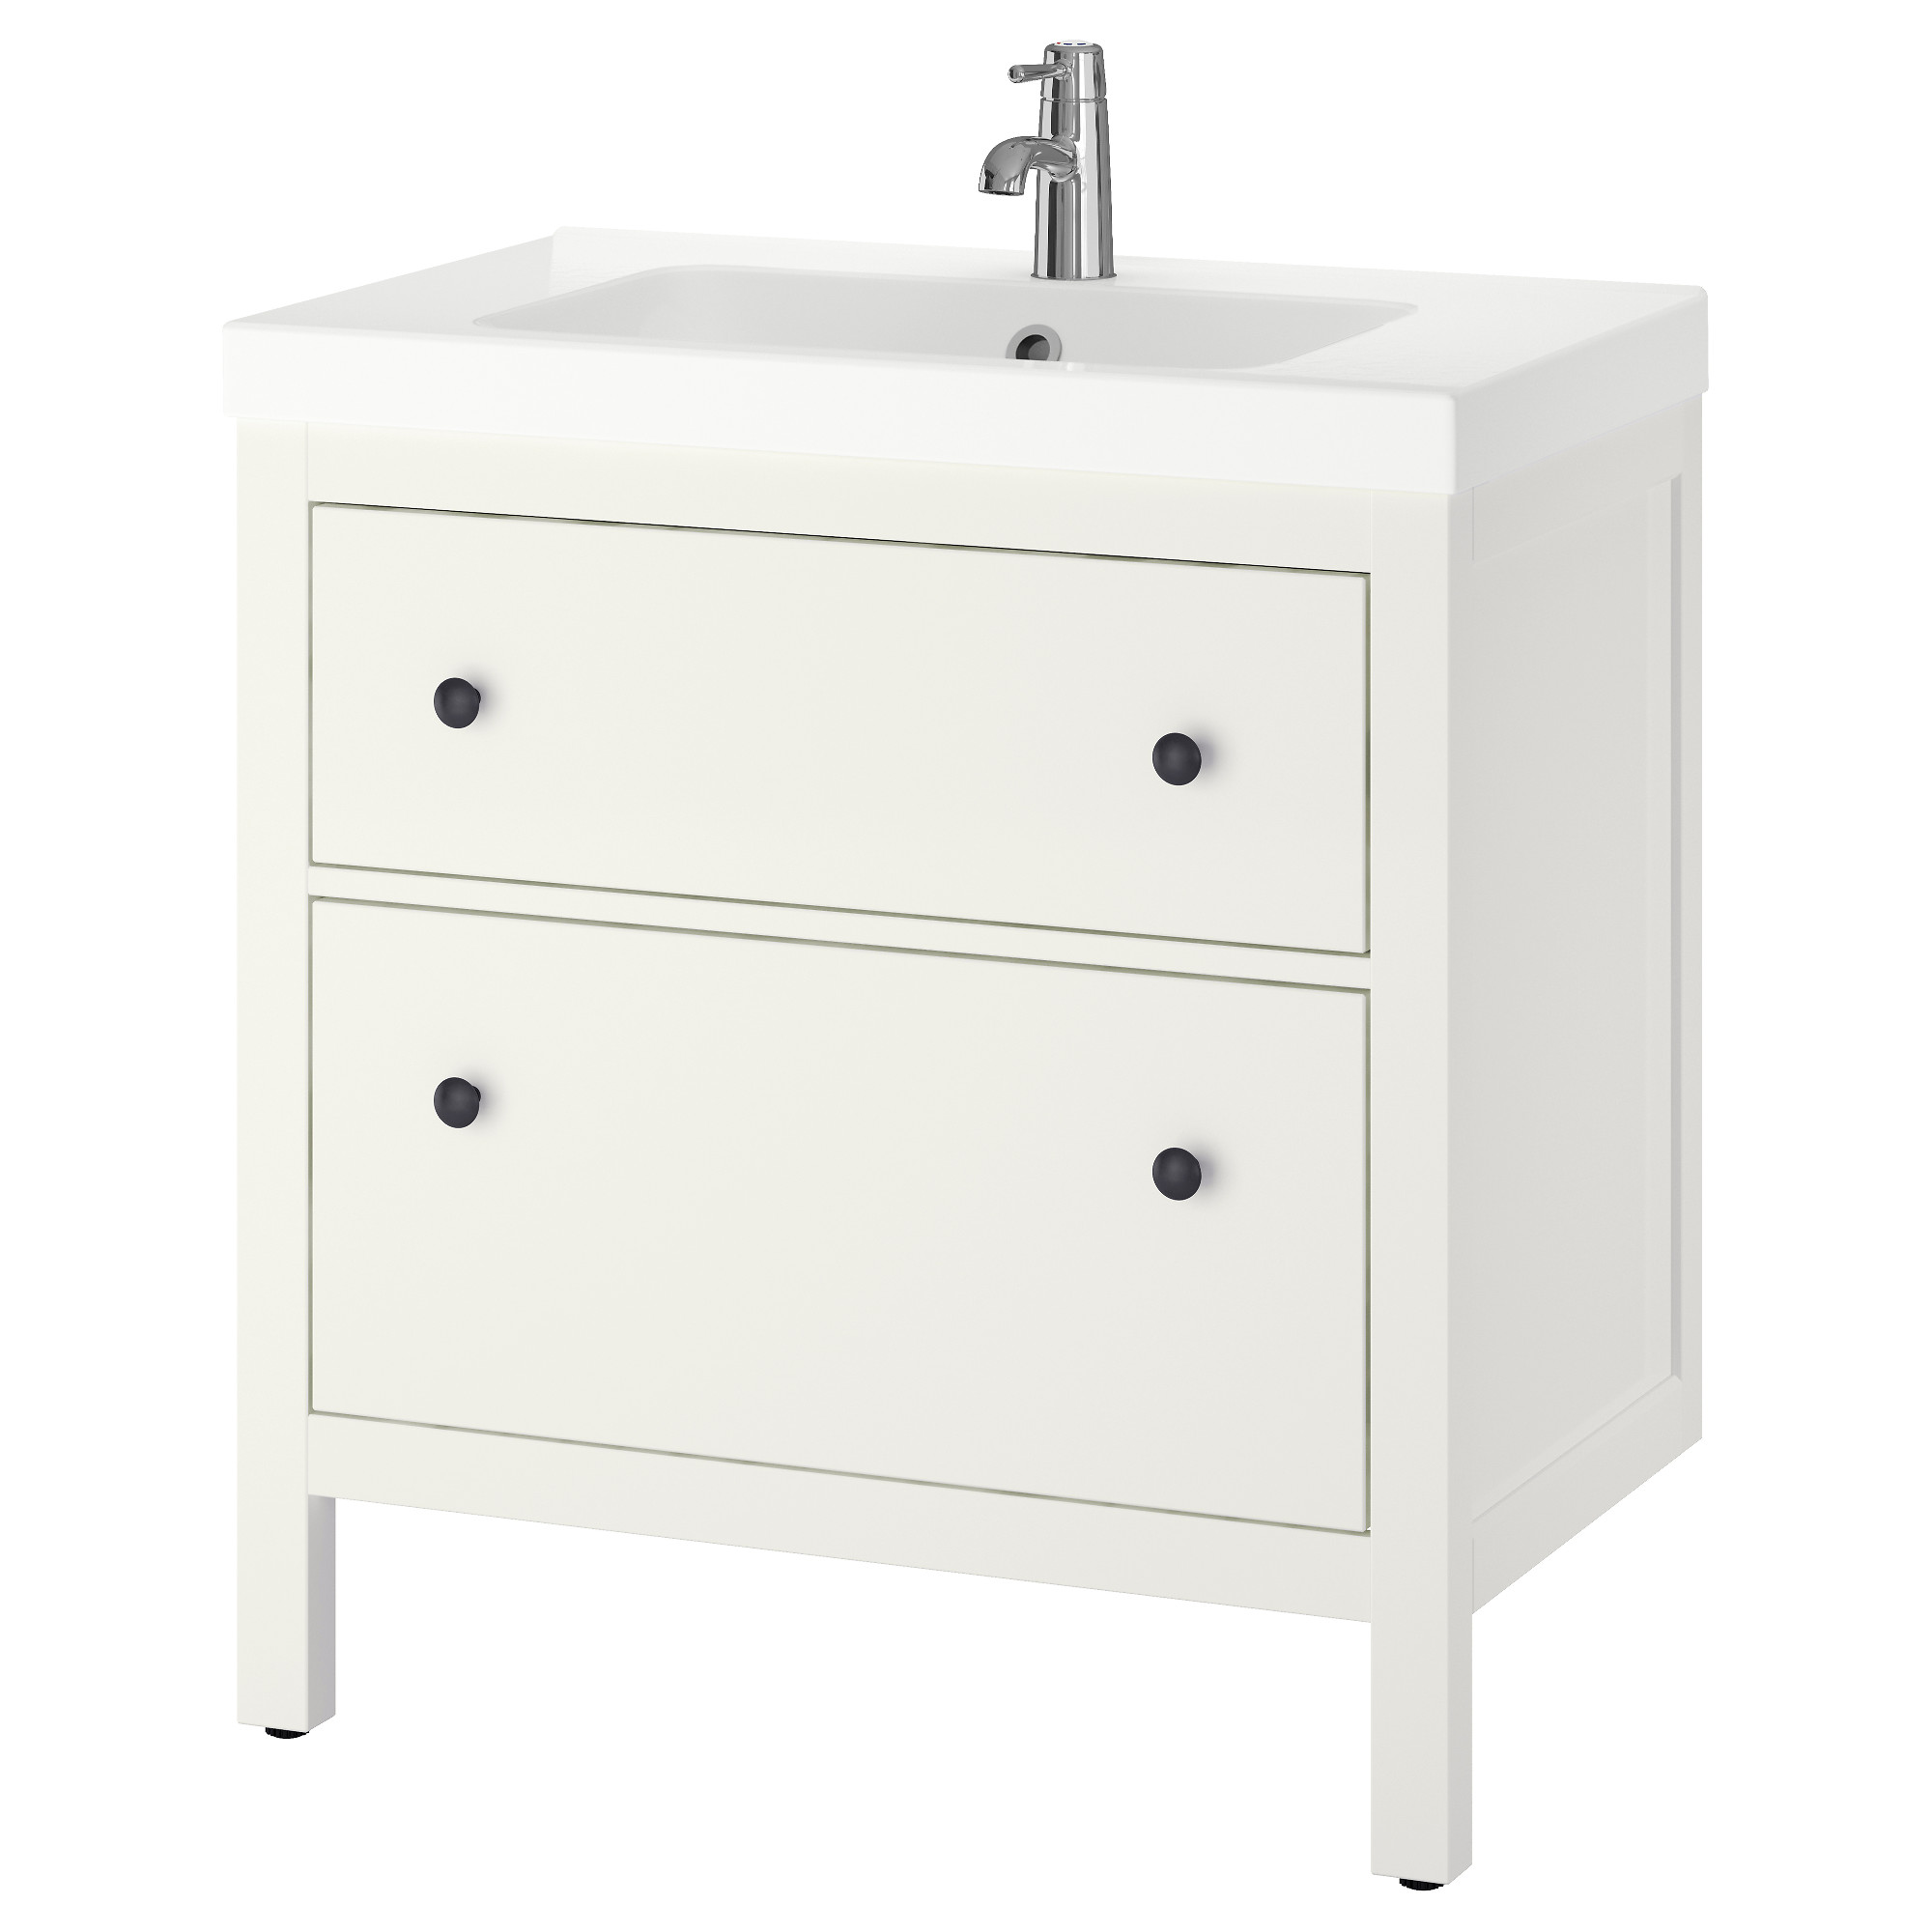 HEMNES ODENSVIK Sink cabinet with 2 drawers white IKEA